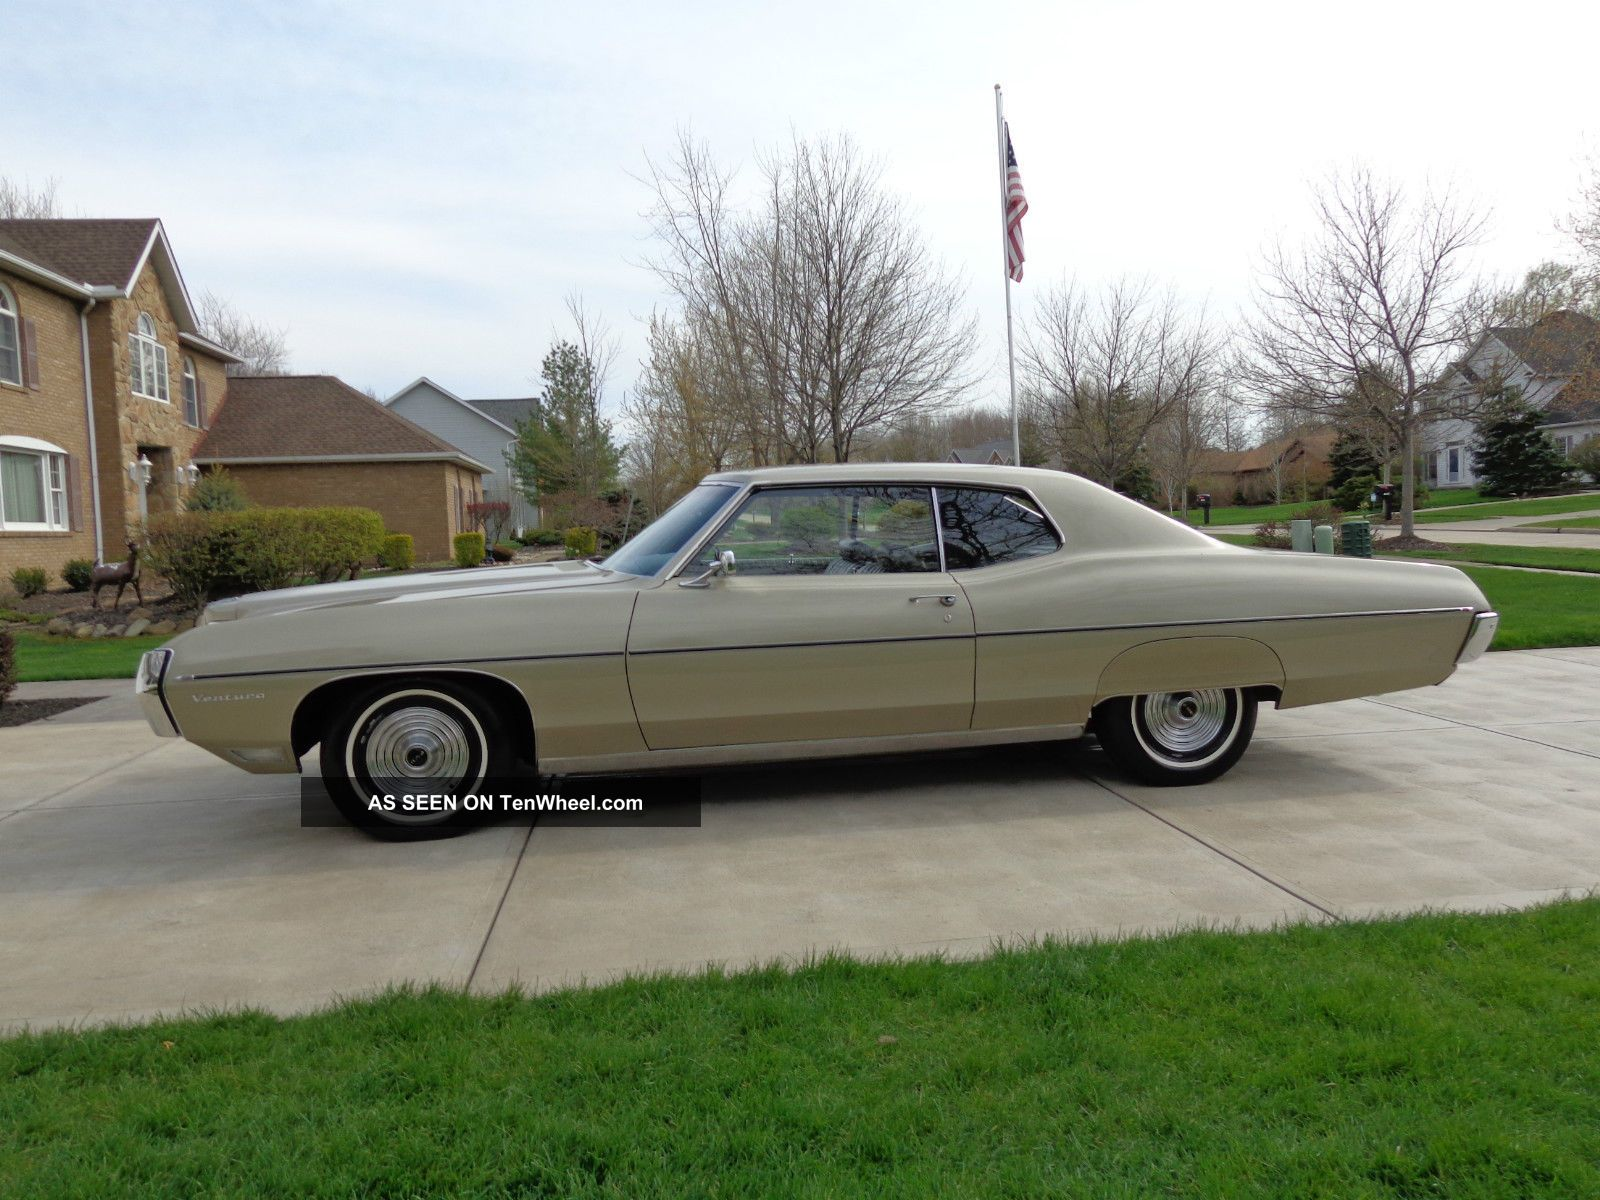 1969 Pontiac Catalina 1963 Wiring Diagram Ventura Window Sticker Protecto Plate Bill 1600x1200